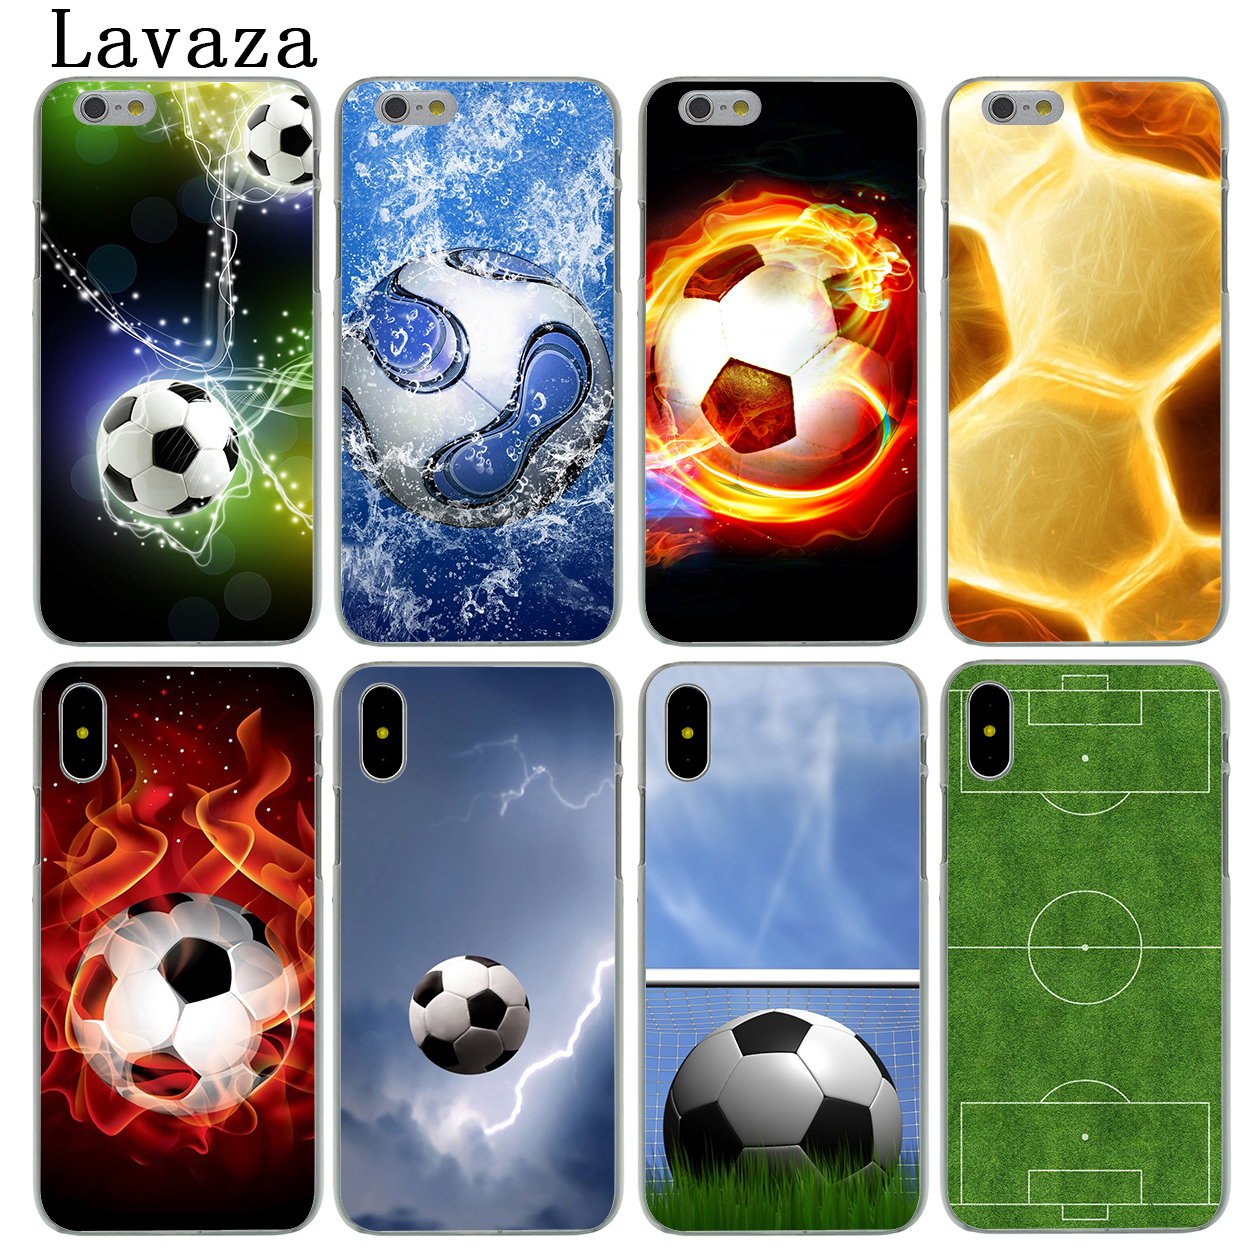 Lavaza Soccer Football Sports court Hard Fashion Phone Skin Shell Case for Apple iPhone X 10 8 7 6 6S Plus 5 5S SE 5C 4 4S Cover